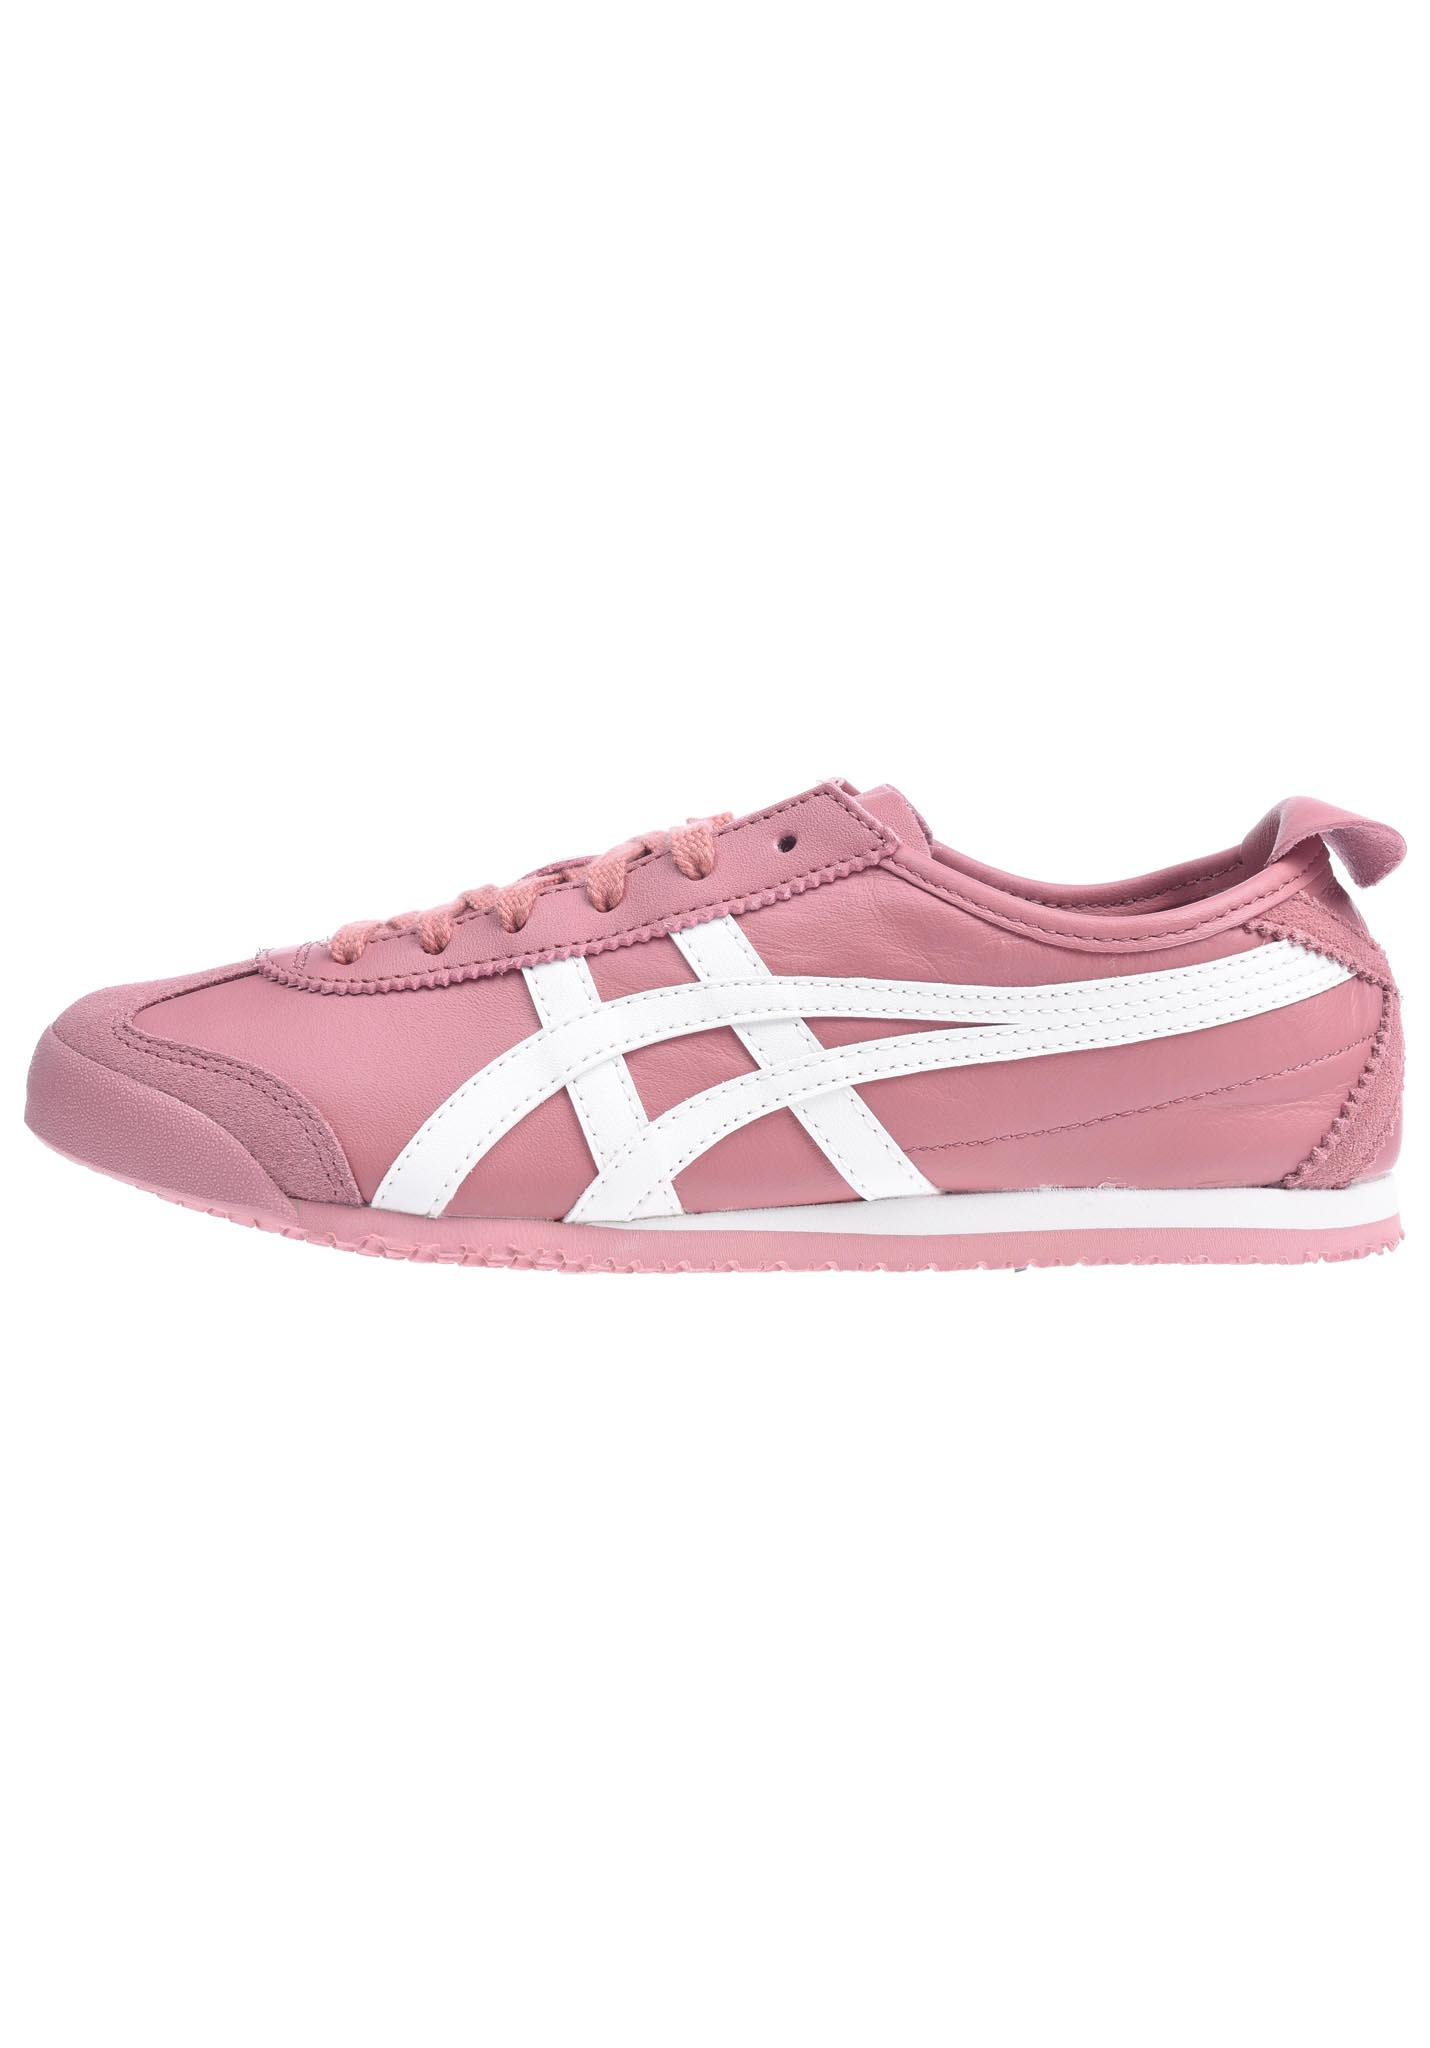 8fd3209e81 Onitsuka Tiger Mexico 66 - Sneakers - Pink - Planet Sports